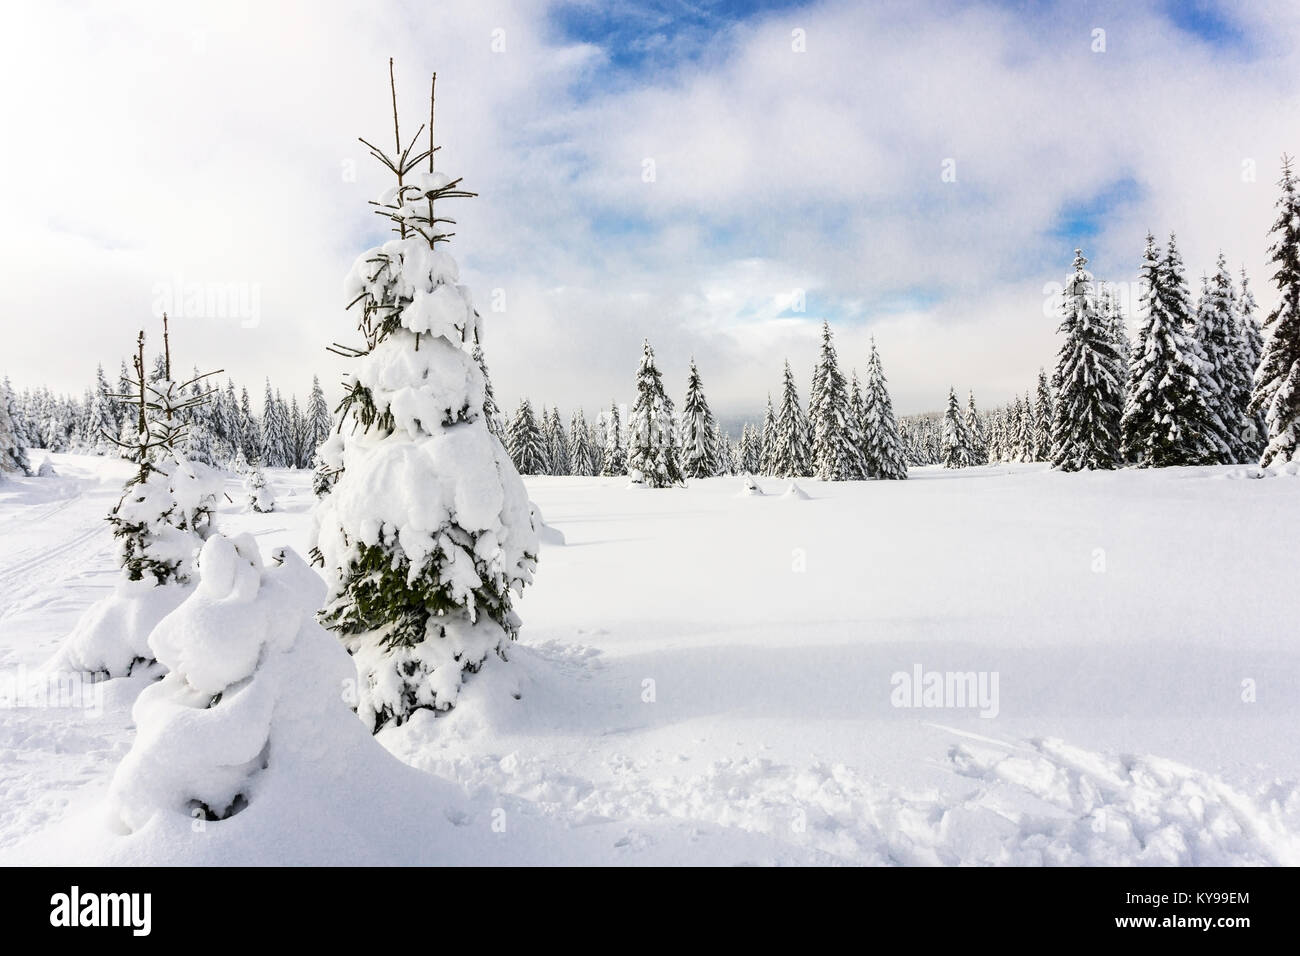 Winter mountains landscape.Trees covered with fresh snow, cloudy sky. Karkonosze,  Giant Mountains, Poland. - Stock Image